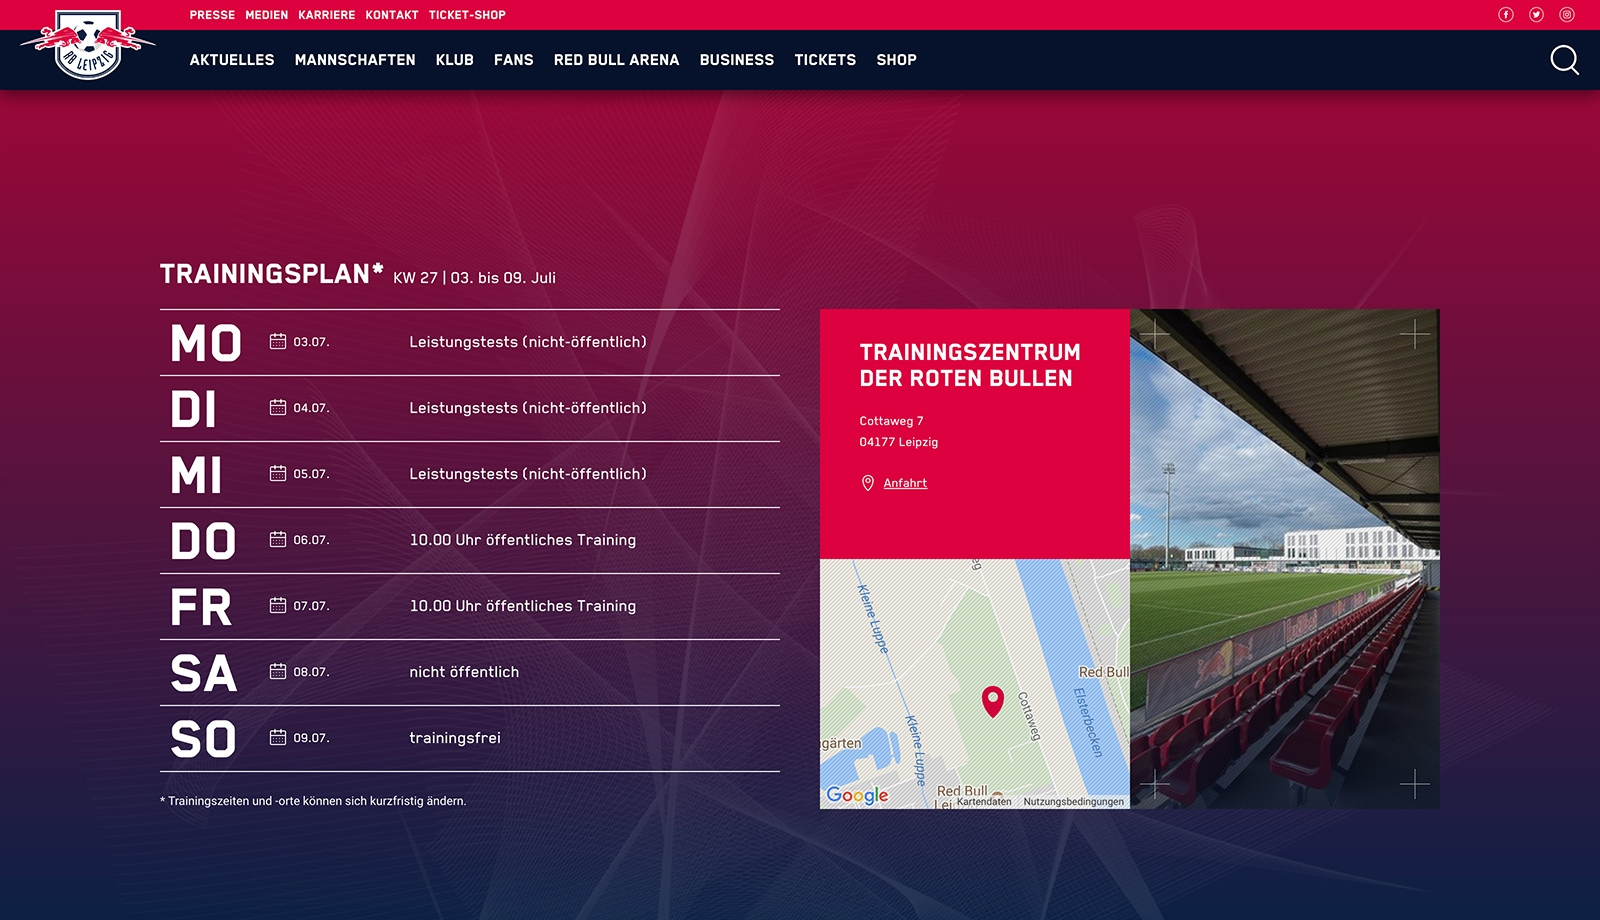 Rb Leipzig Website Relaunch 2017 Image 10